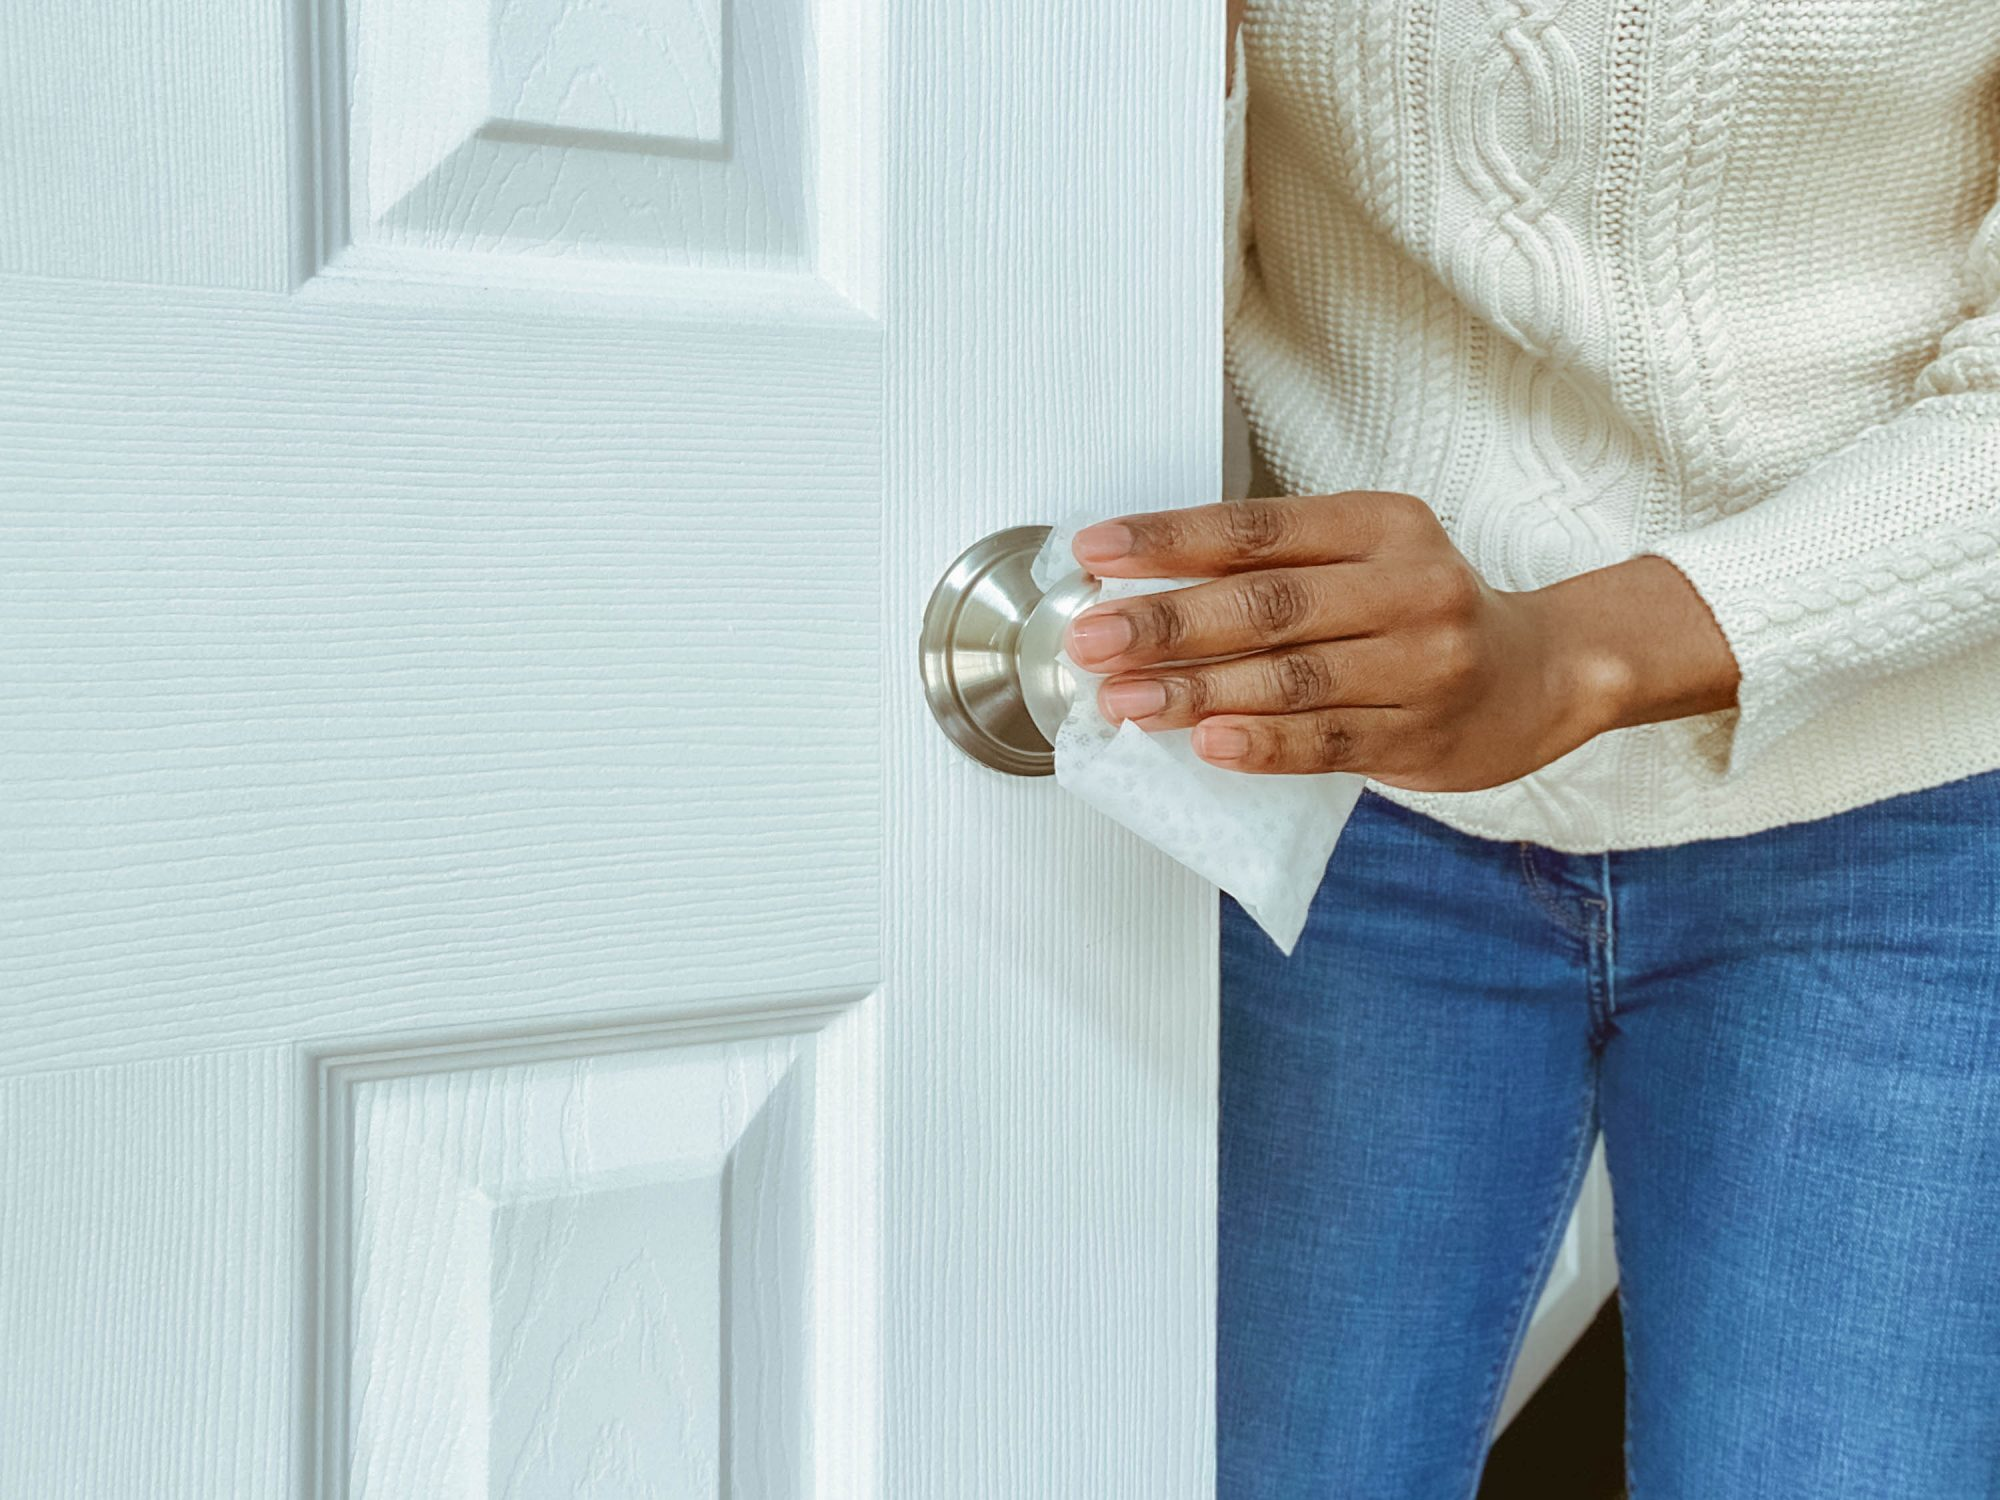 Woman Cleans Doorknob with Disinfectant Wipe